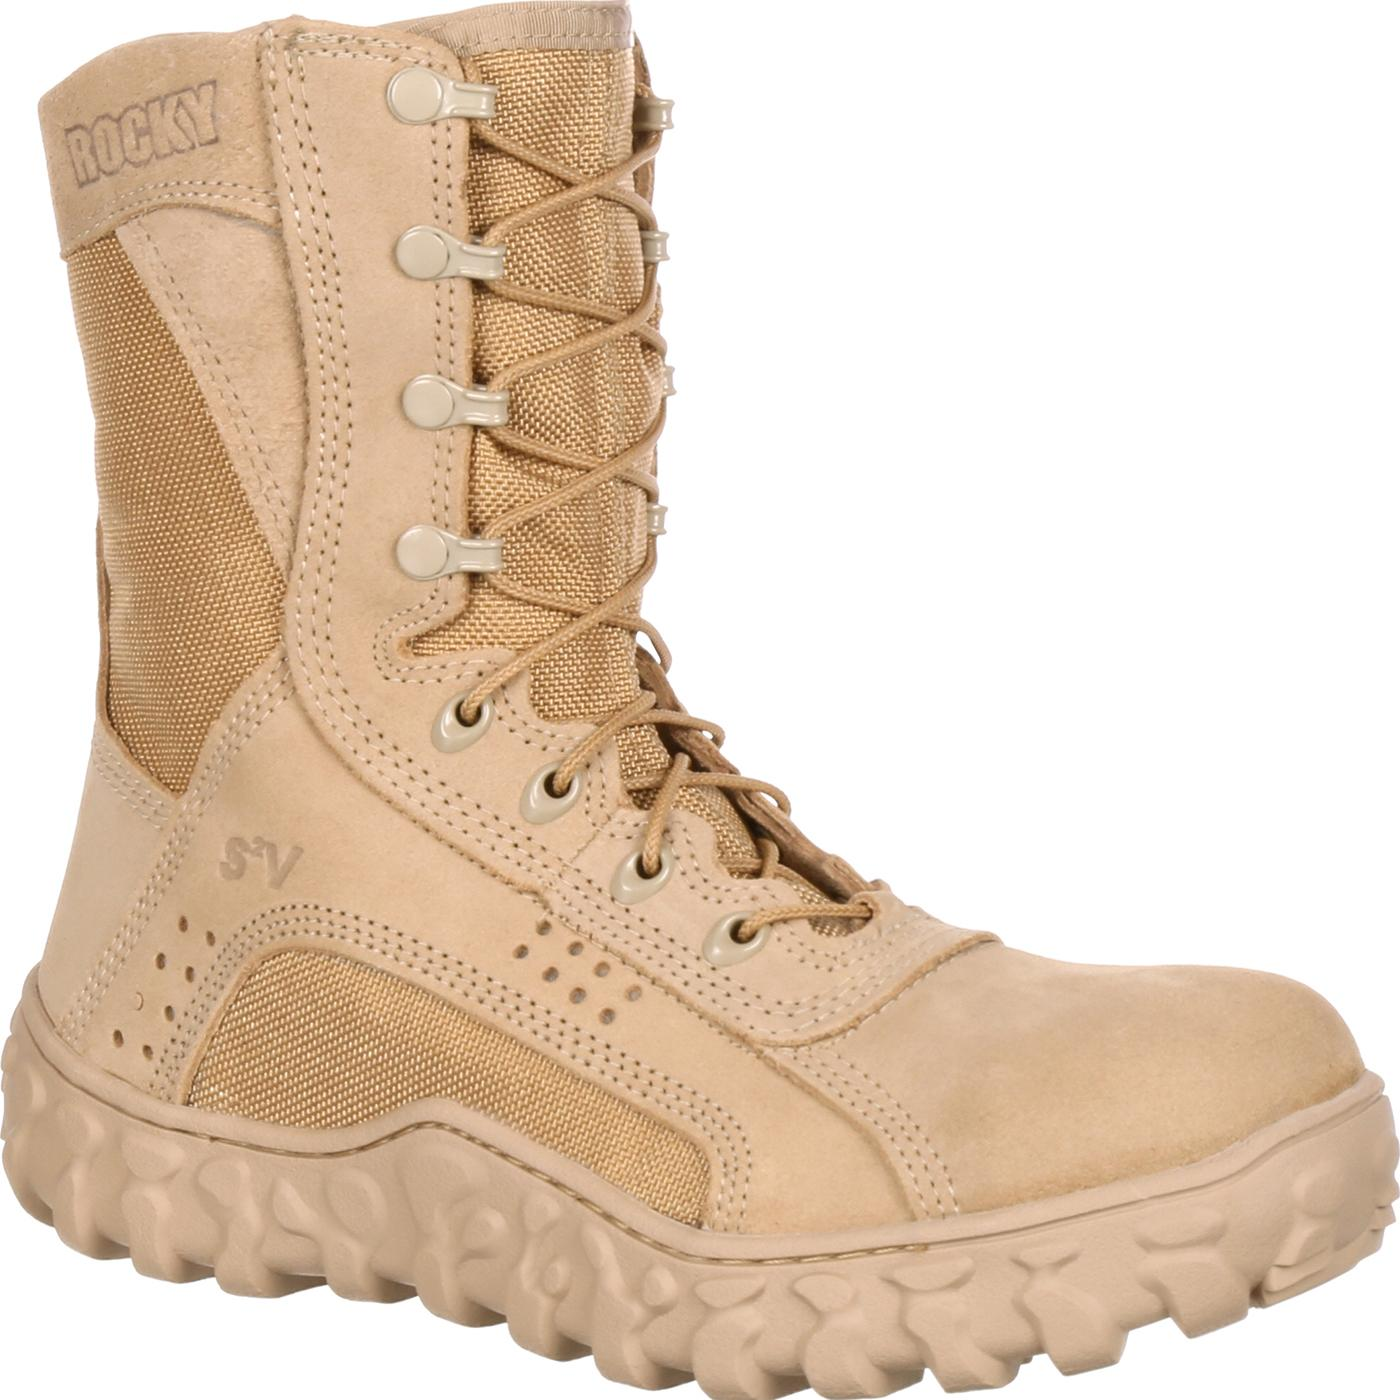 rocky boots rocky s2v tactical military boot, , large gqpcuid